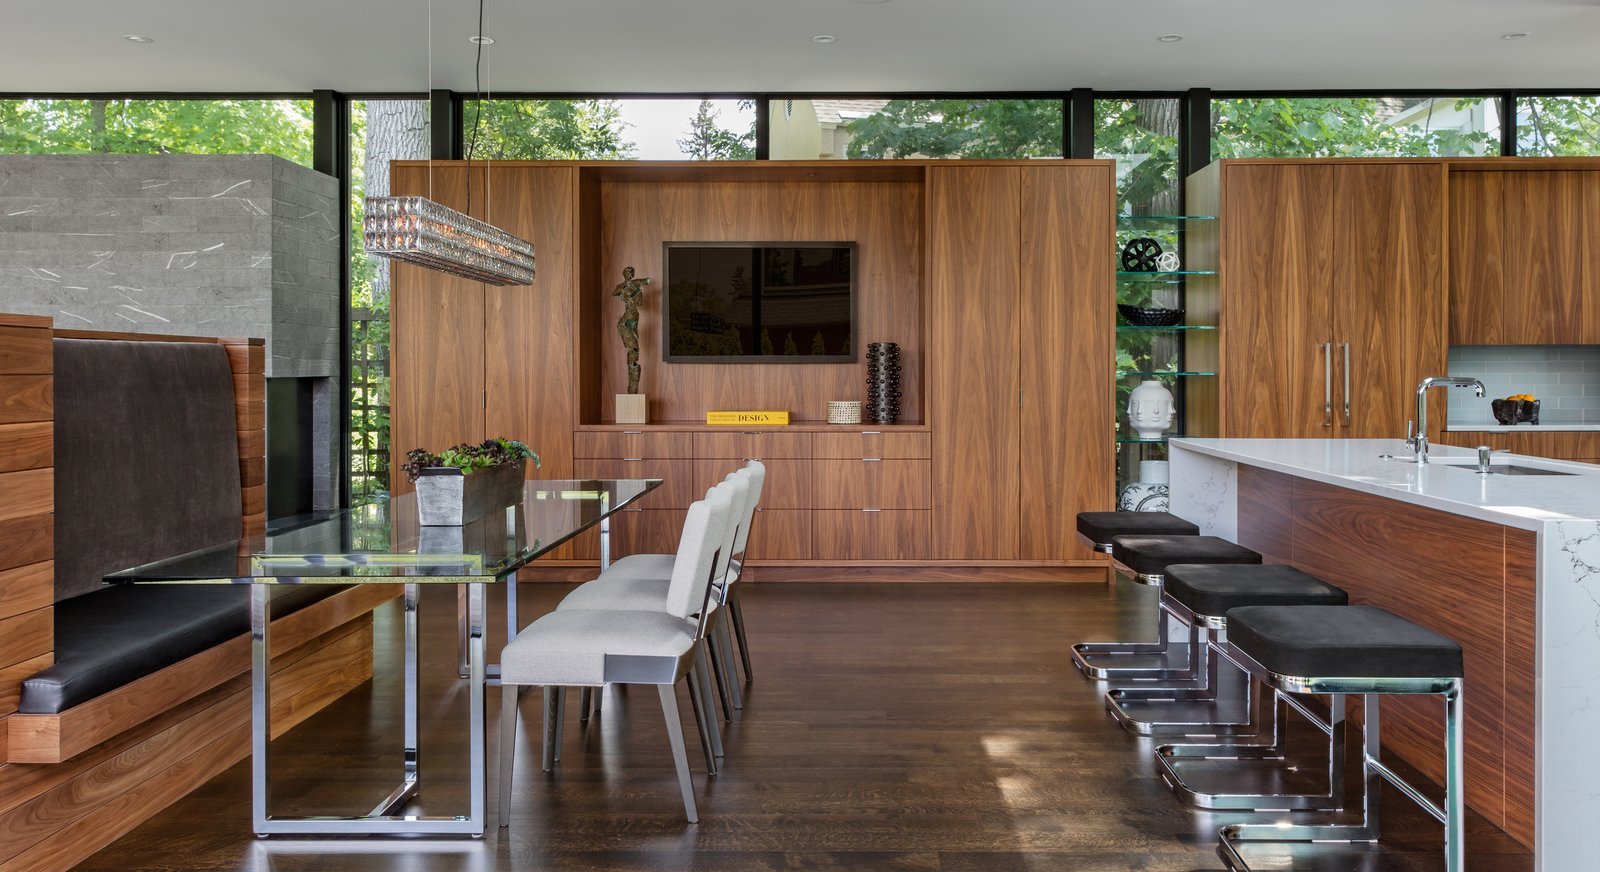 Tagged: Chair, Table, Bench, Storage, Accent Lighting, Pendant Lighting, Stools, Bar, Dark Hardwood Floor, Engineered Quartz Counter, Dining Room, Drop In Sink, and Ceiling Lighting.  Calhoun Pavilions Residence by Peterssen/Keller Architecture